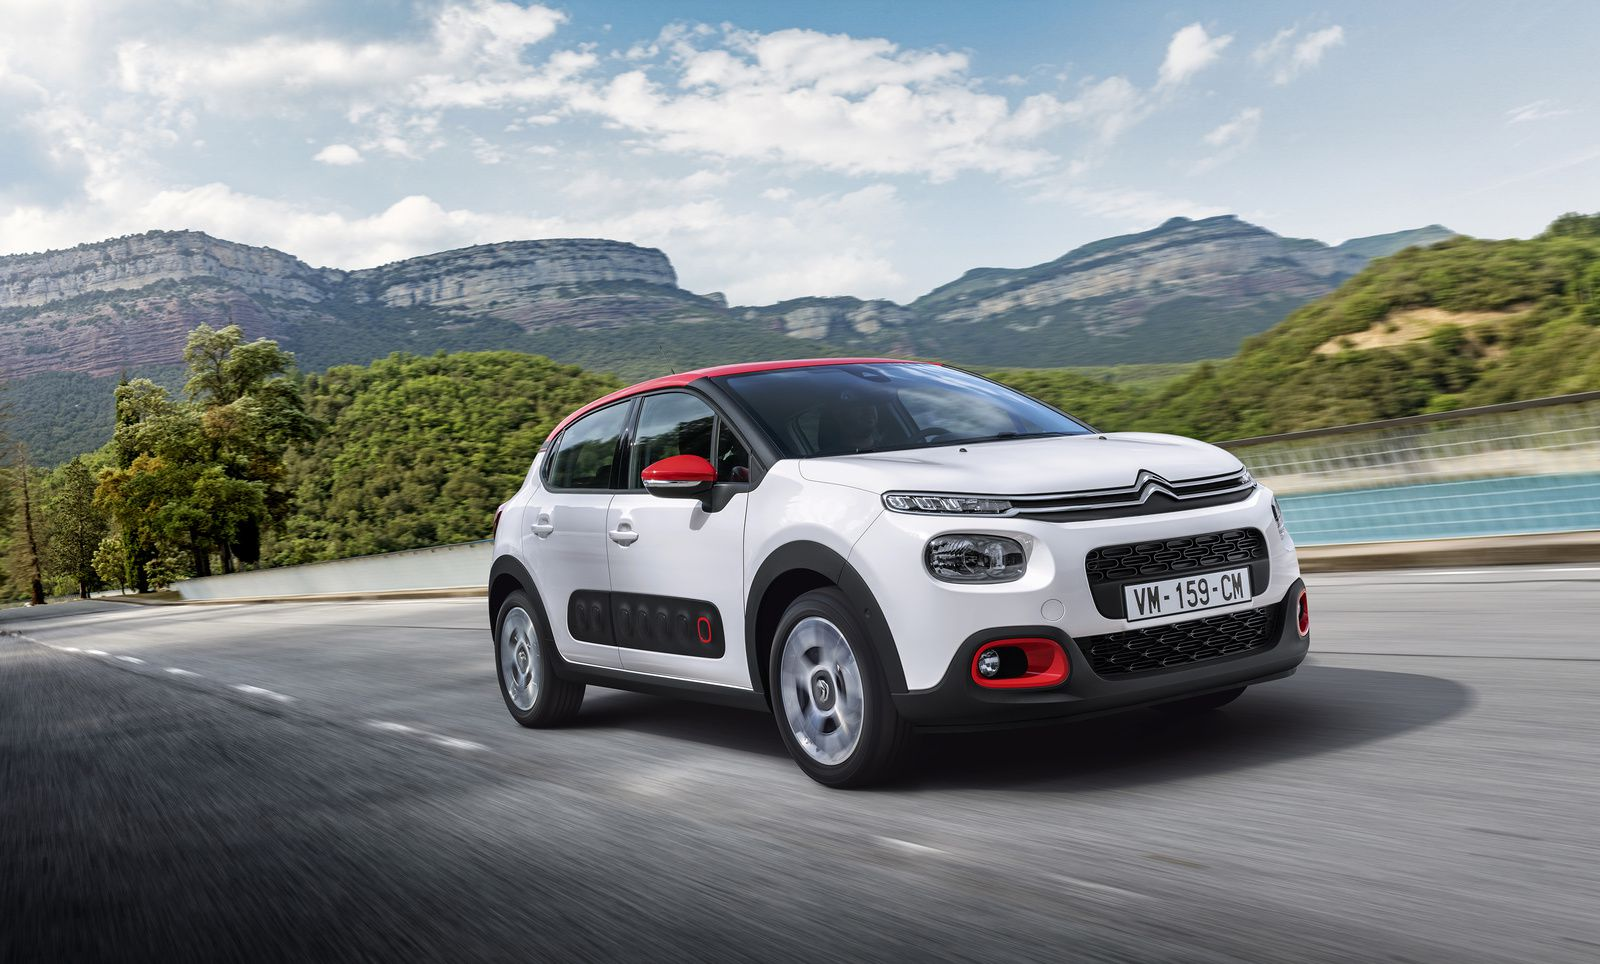 [VIDEO] ALL-NEW 2017 CITROEN C3